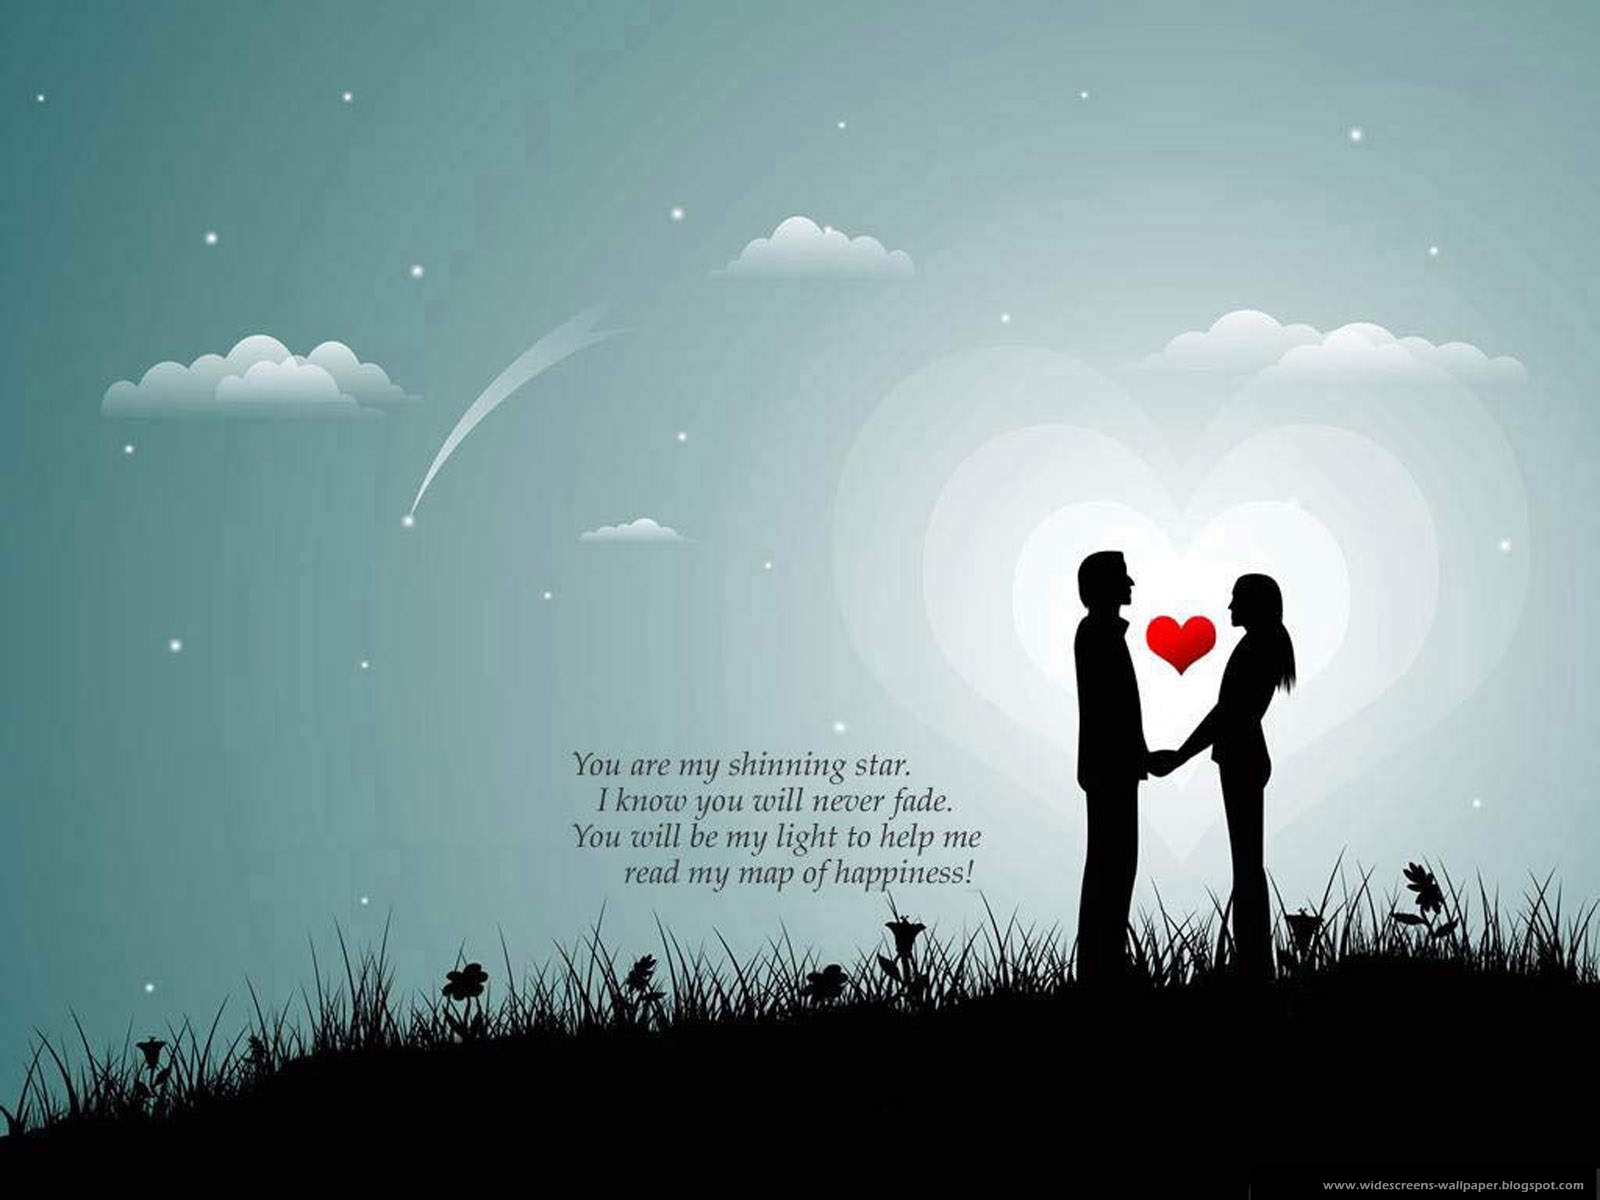 Love couple Wallpaper With Love Quotes : Wallpaper collection For Your computer and Mobile Phones: New Romantic Love Words And Quotations ...